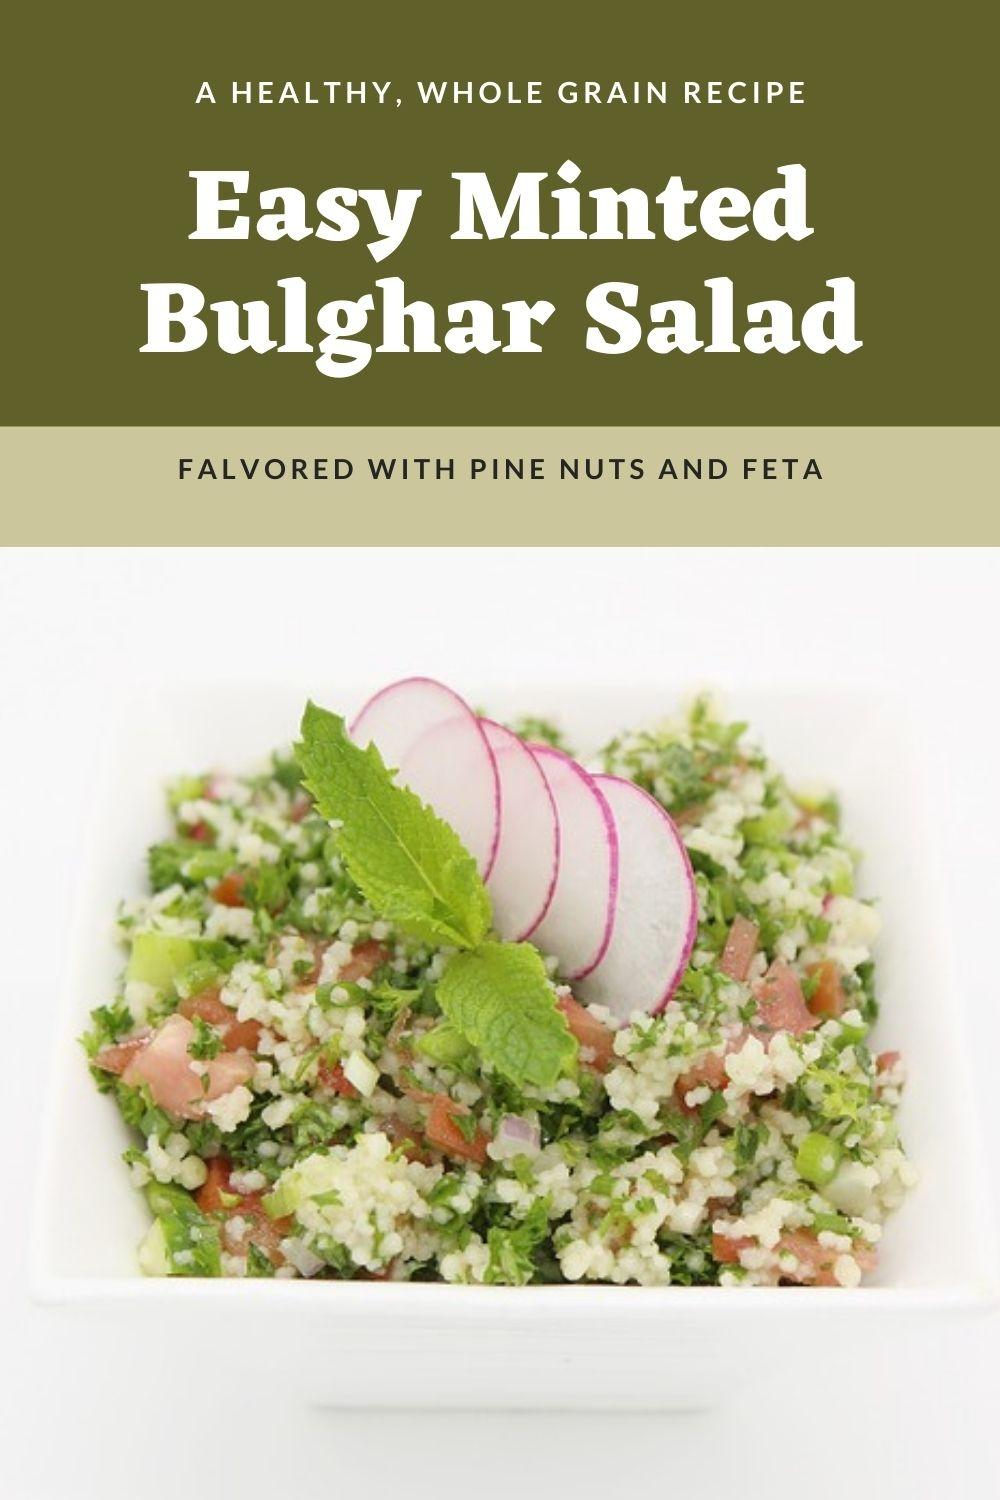 Minted Bulghar Salad Graphic